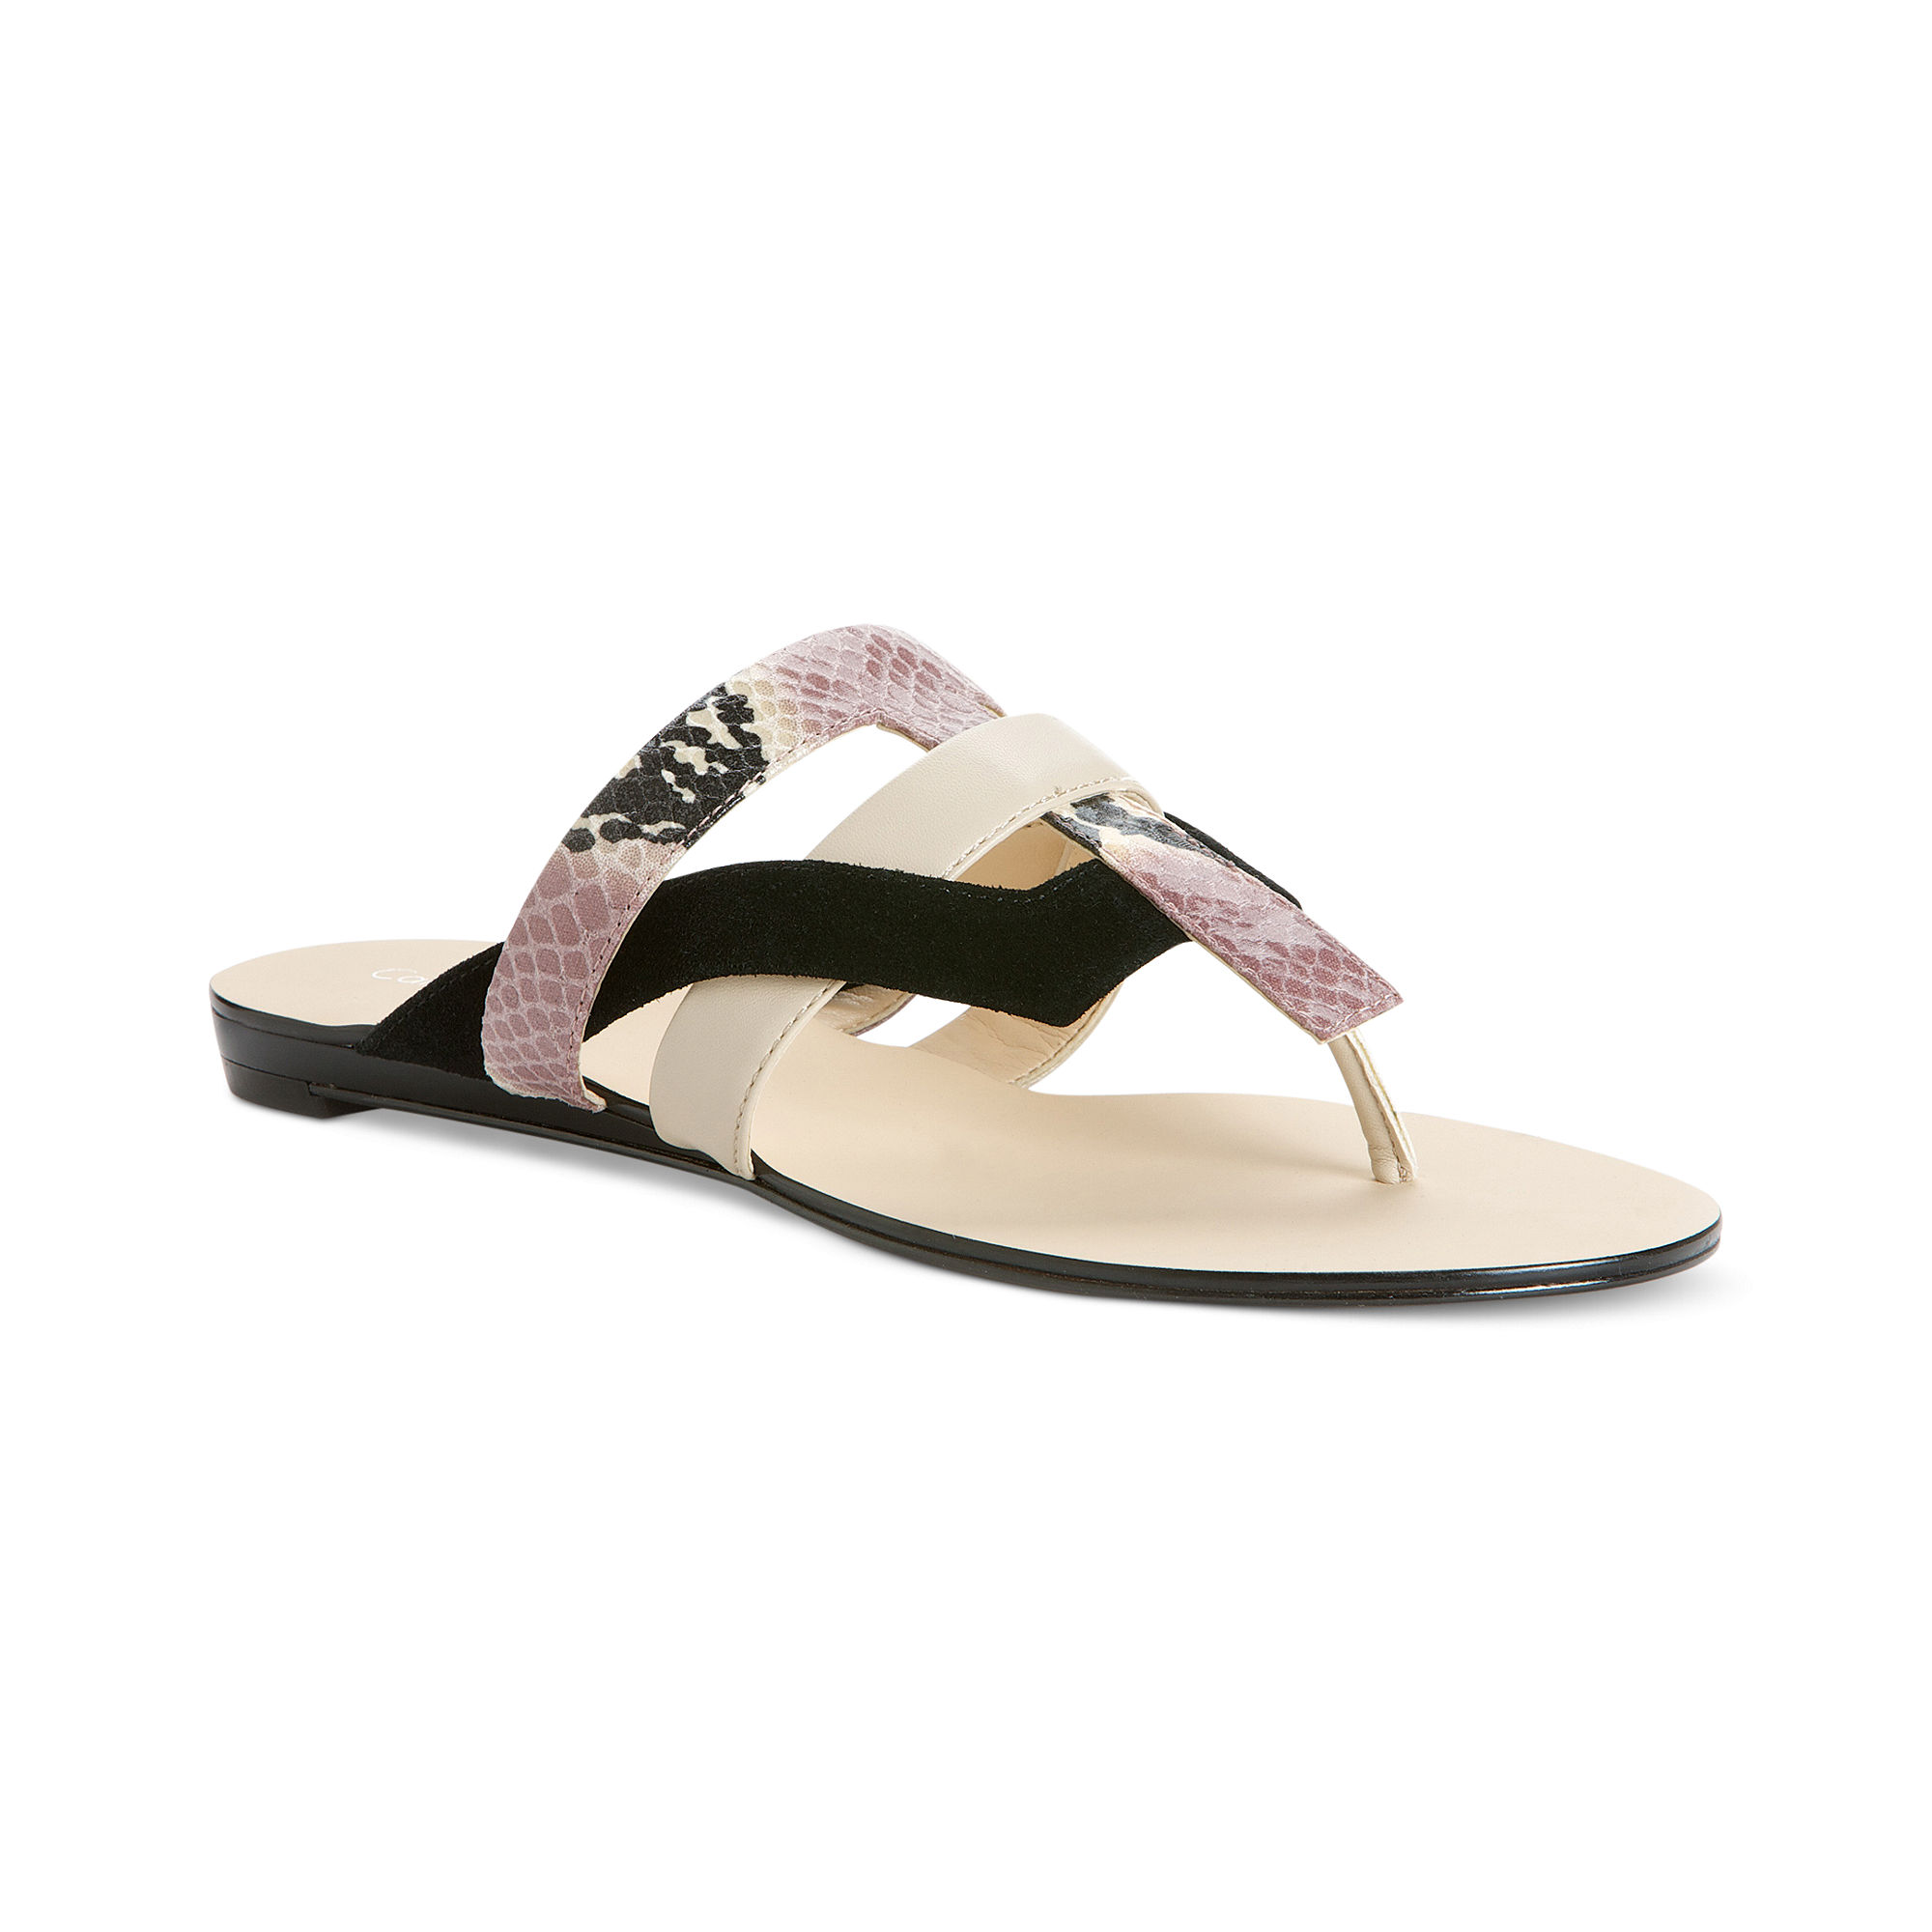 a9ca1bf242dbc9 ... high heels white black and. calvin klein black sandals calvin klein  sarina flat sandals in black black